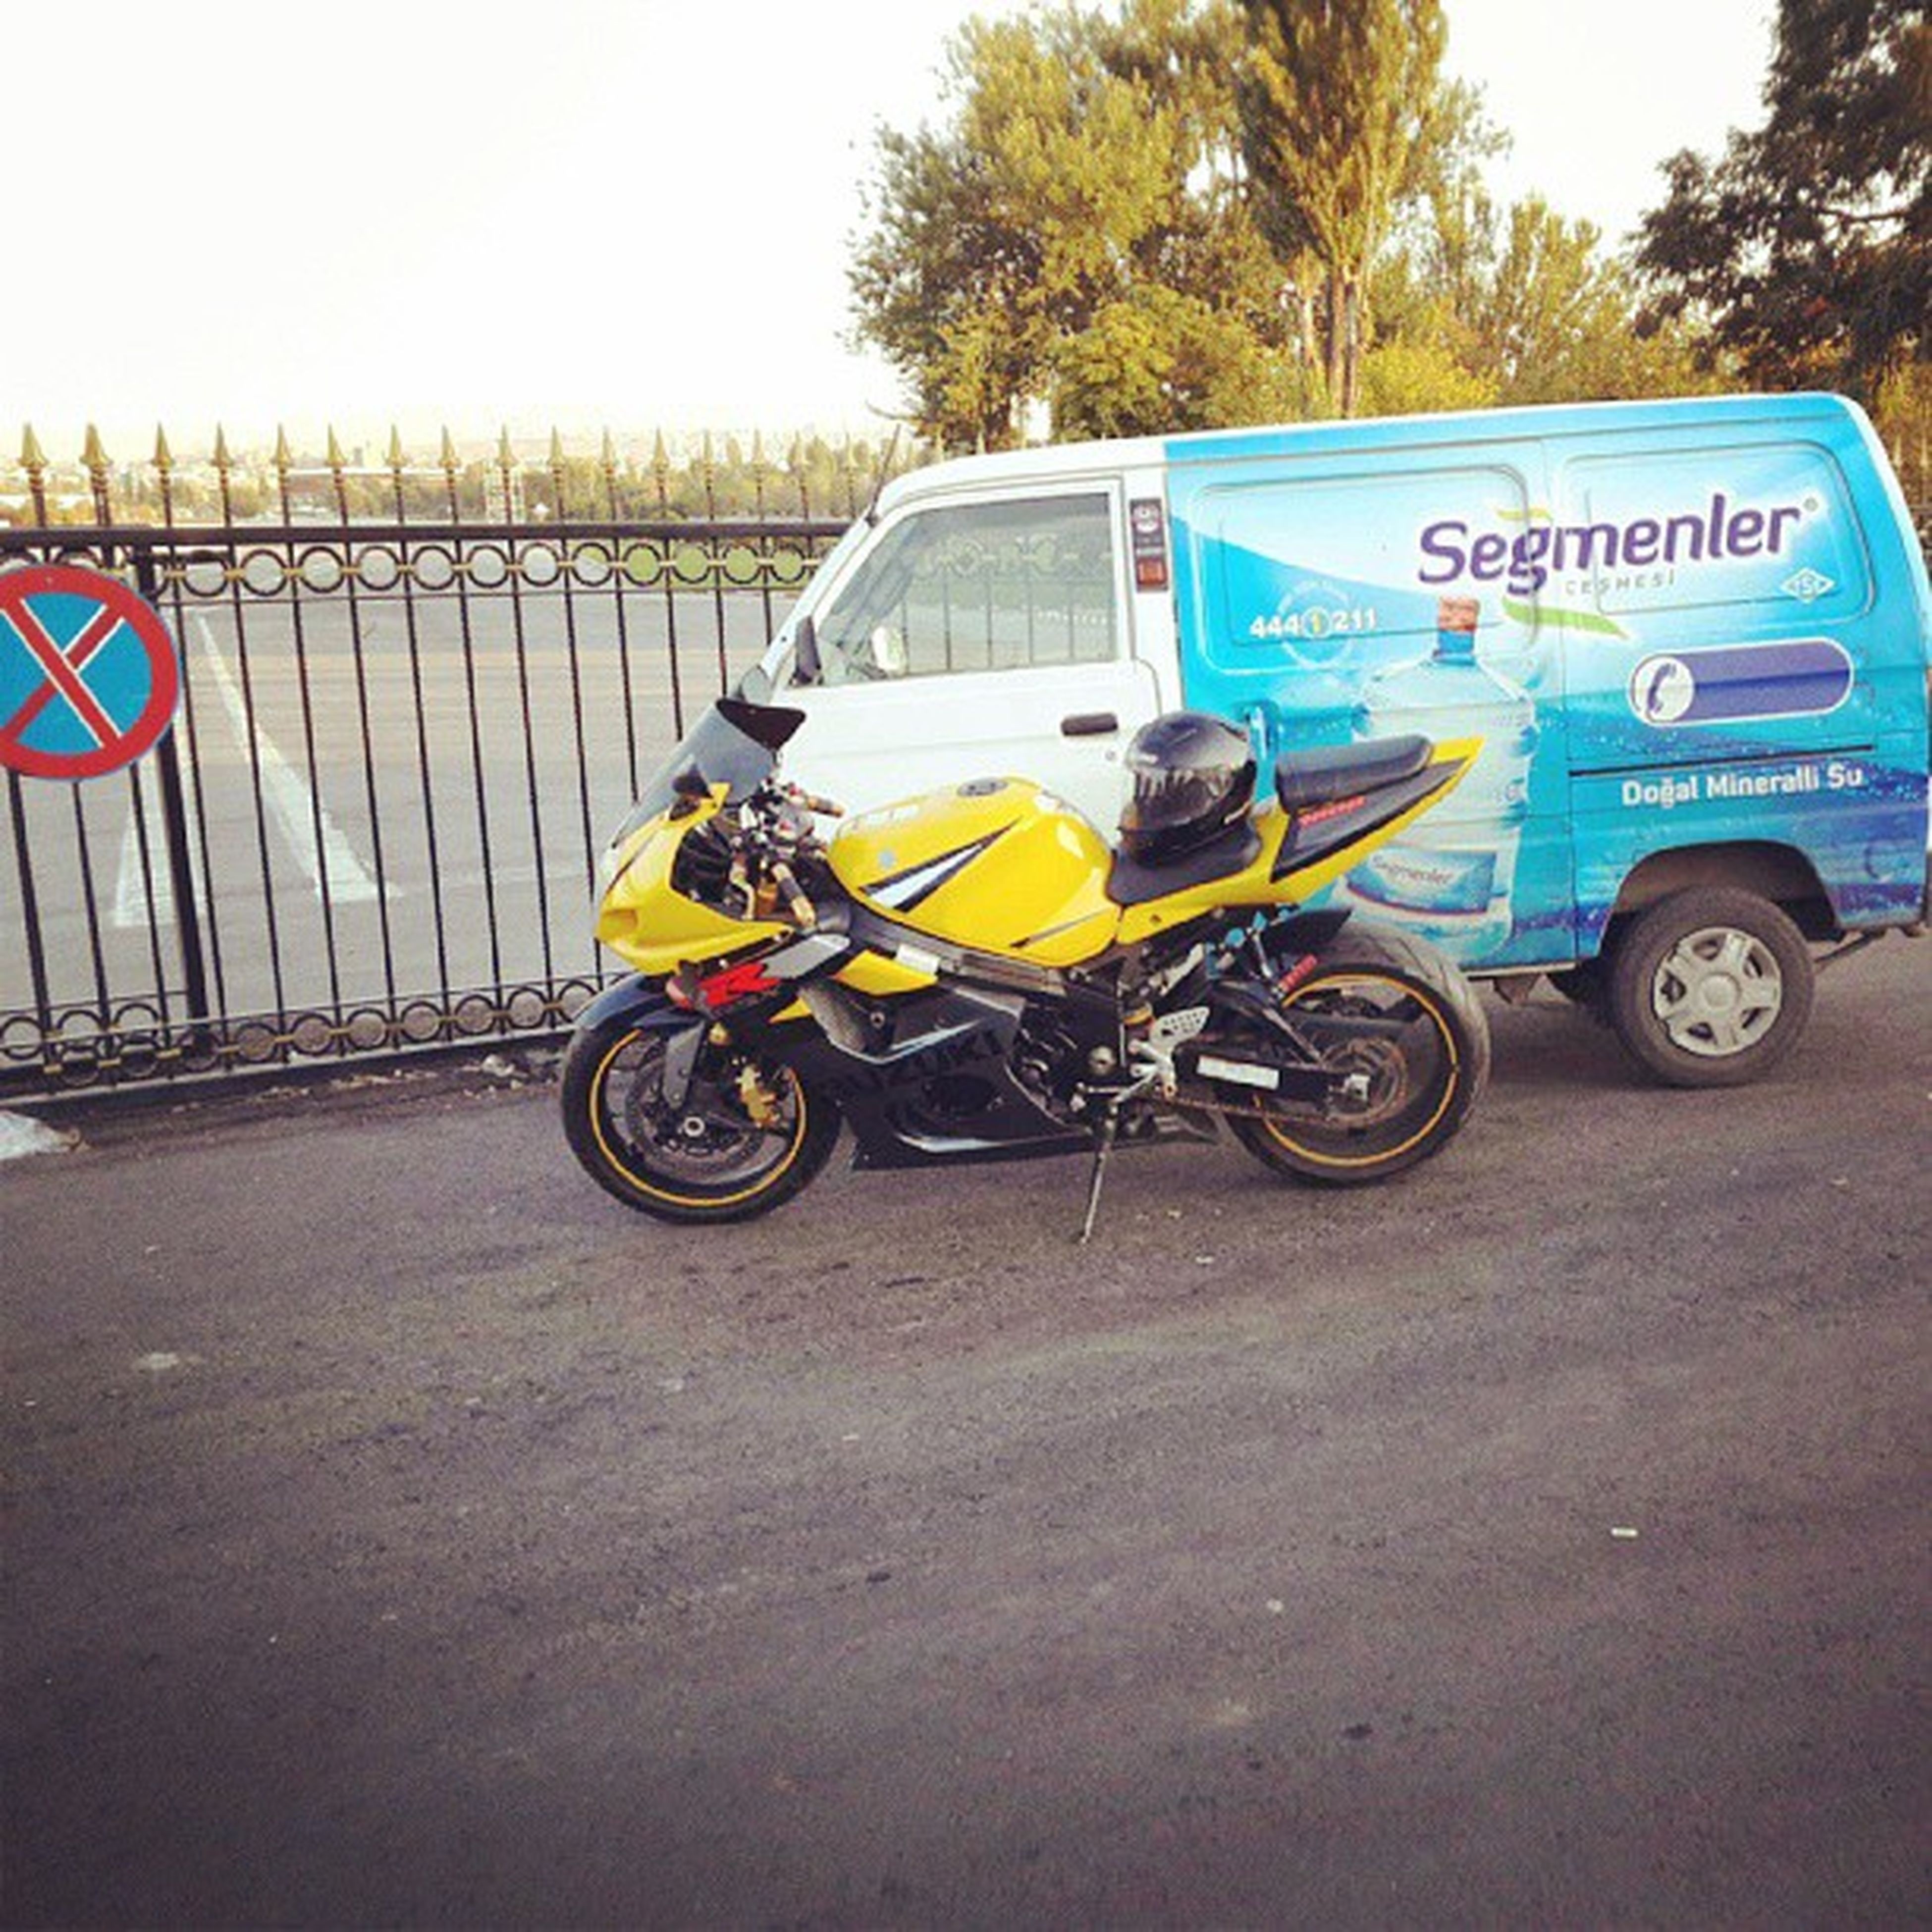 transportation, mode of transport, land vehicle, bicycle, stationary, parked, riding, car, parking, street, travel, road, tree, on the move, day, motorcycle, yellow, cycling, text